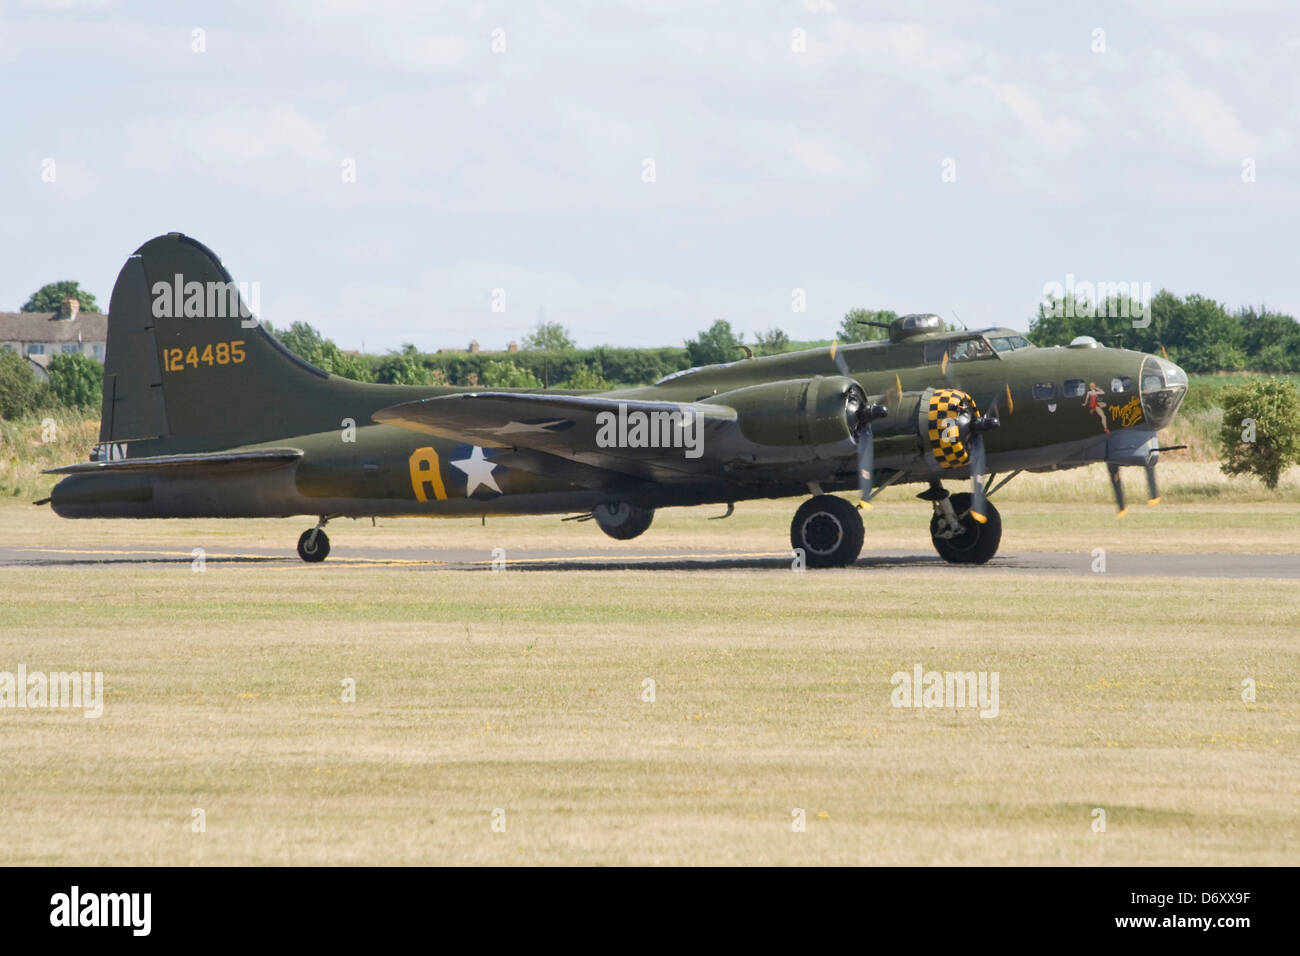 B17 G-BEDF - 124485 at Duxford Flying Legends Airshow - Stock Image